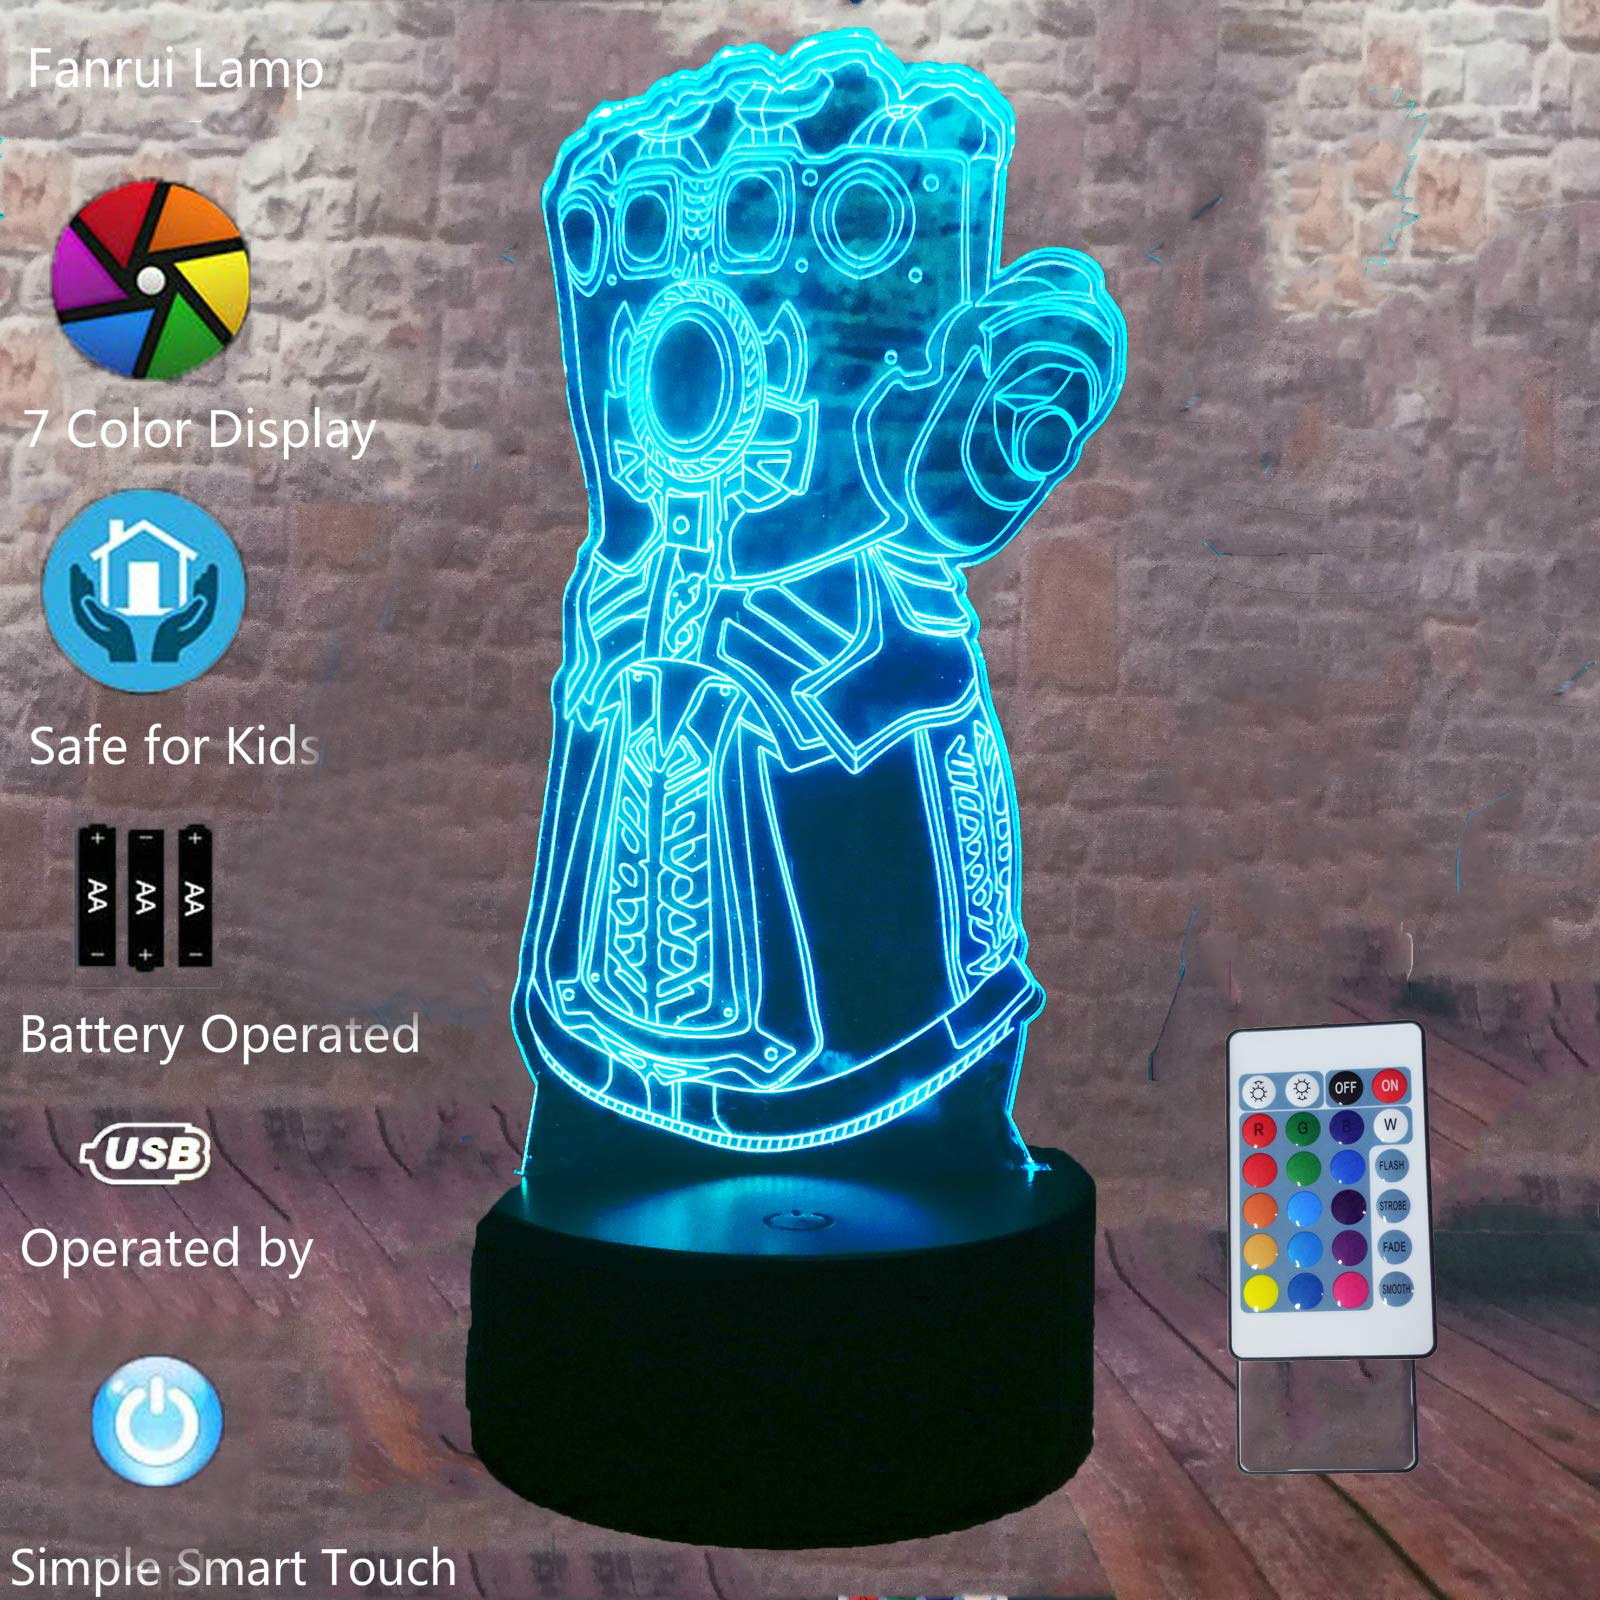 Fanrui Avengers Thanos Infinity Gauntlet Lamp - Marvel Legends Series Infinity War Thanos Gloves - 3D Soft 7 Colors Change LED RGB Night Light - Boys Bedroom Deco - Child Kids Teens Friends Toys Gifts